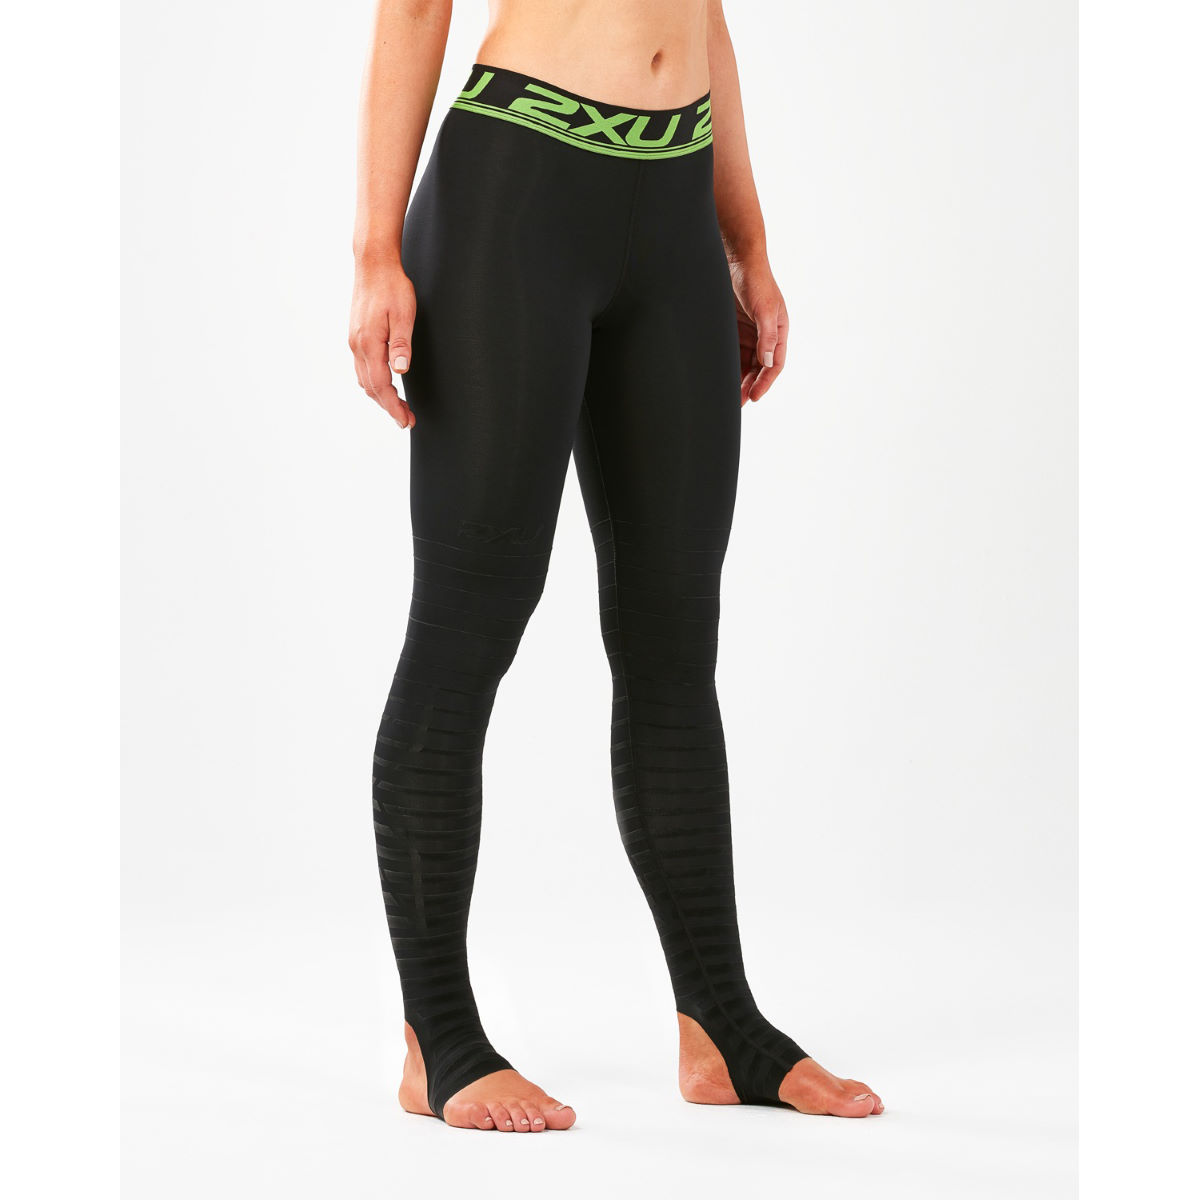 2xu Womens Power Recovery Compression Tights - M Black/nero